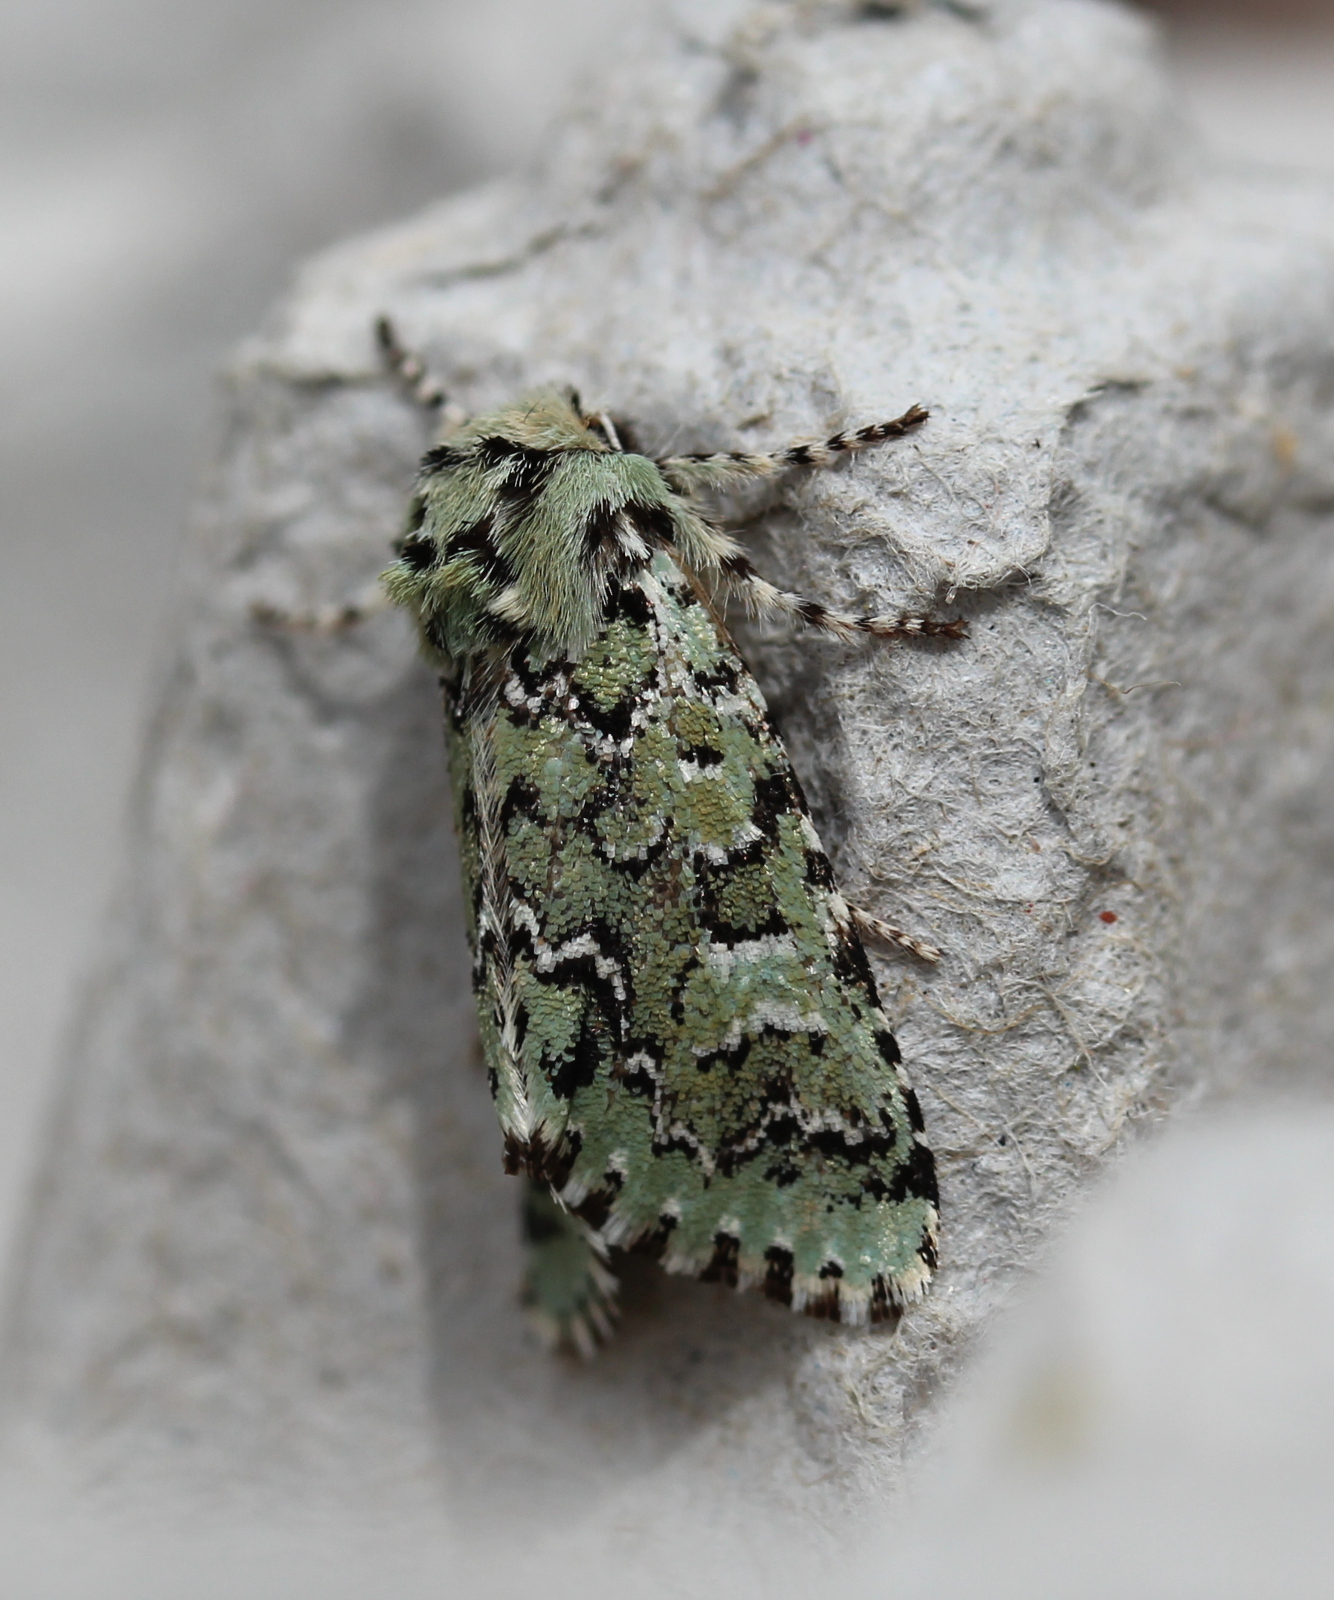 Greenish/grey mottled moth on egg carton